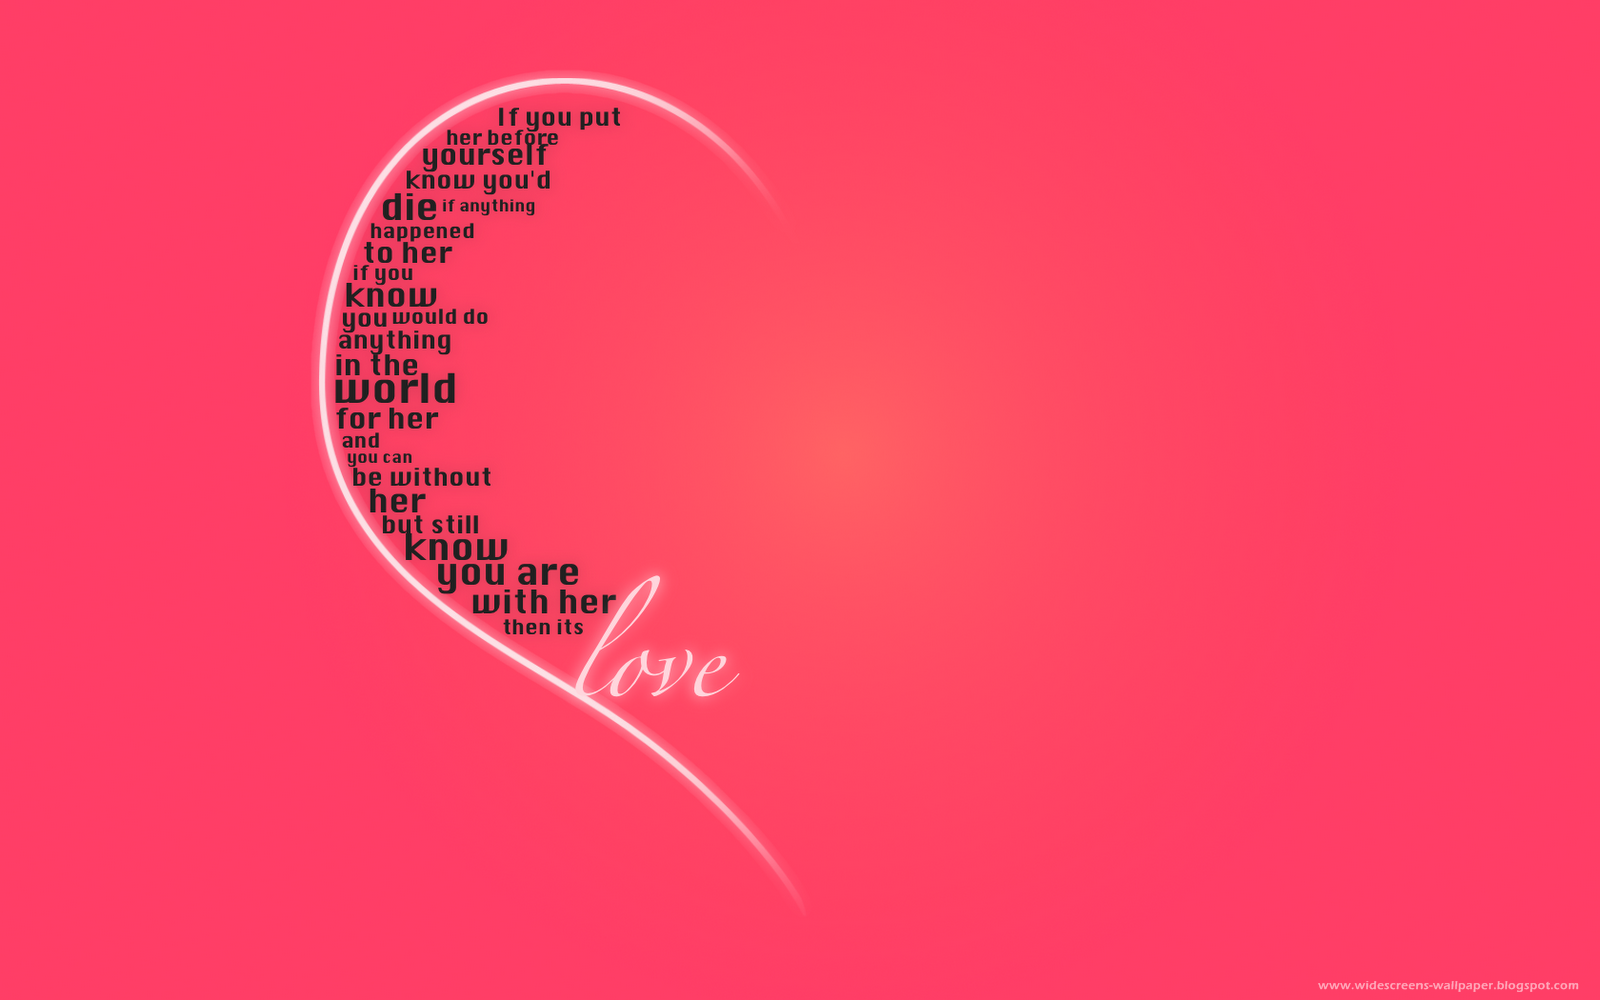 New Latest Love Quotes Wallpaper : Wallpaper collection For Your computer and Mobile Phones: New Romantic Love Words And Quotations ...